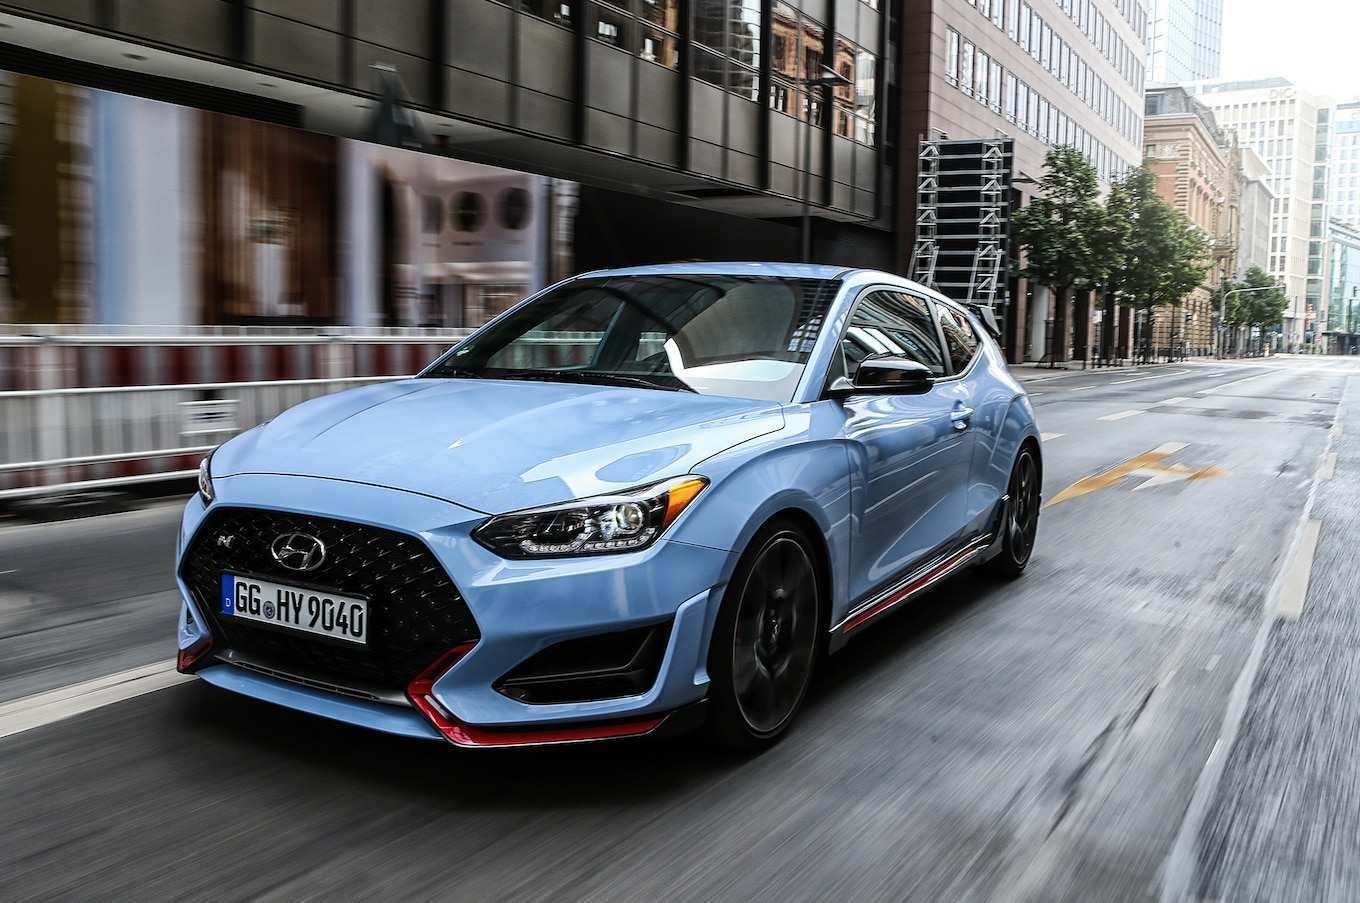 93 All New 2020 Hyundai Veloster Exterior and Interior for 2020 Hyundai Veloster